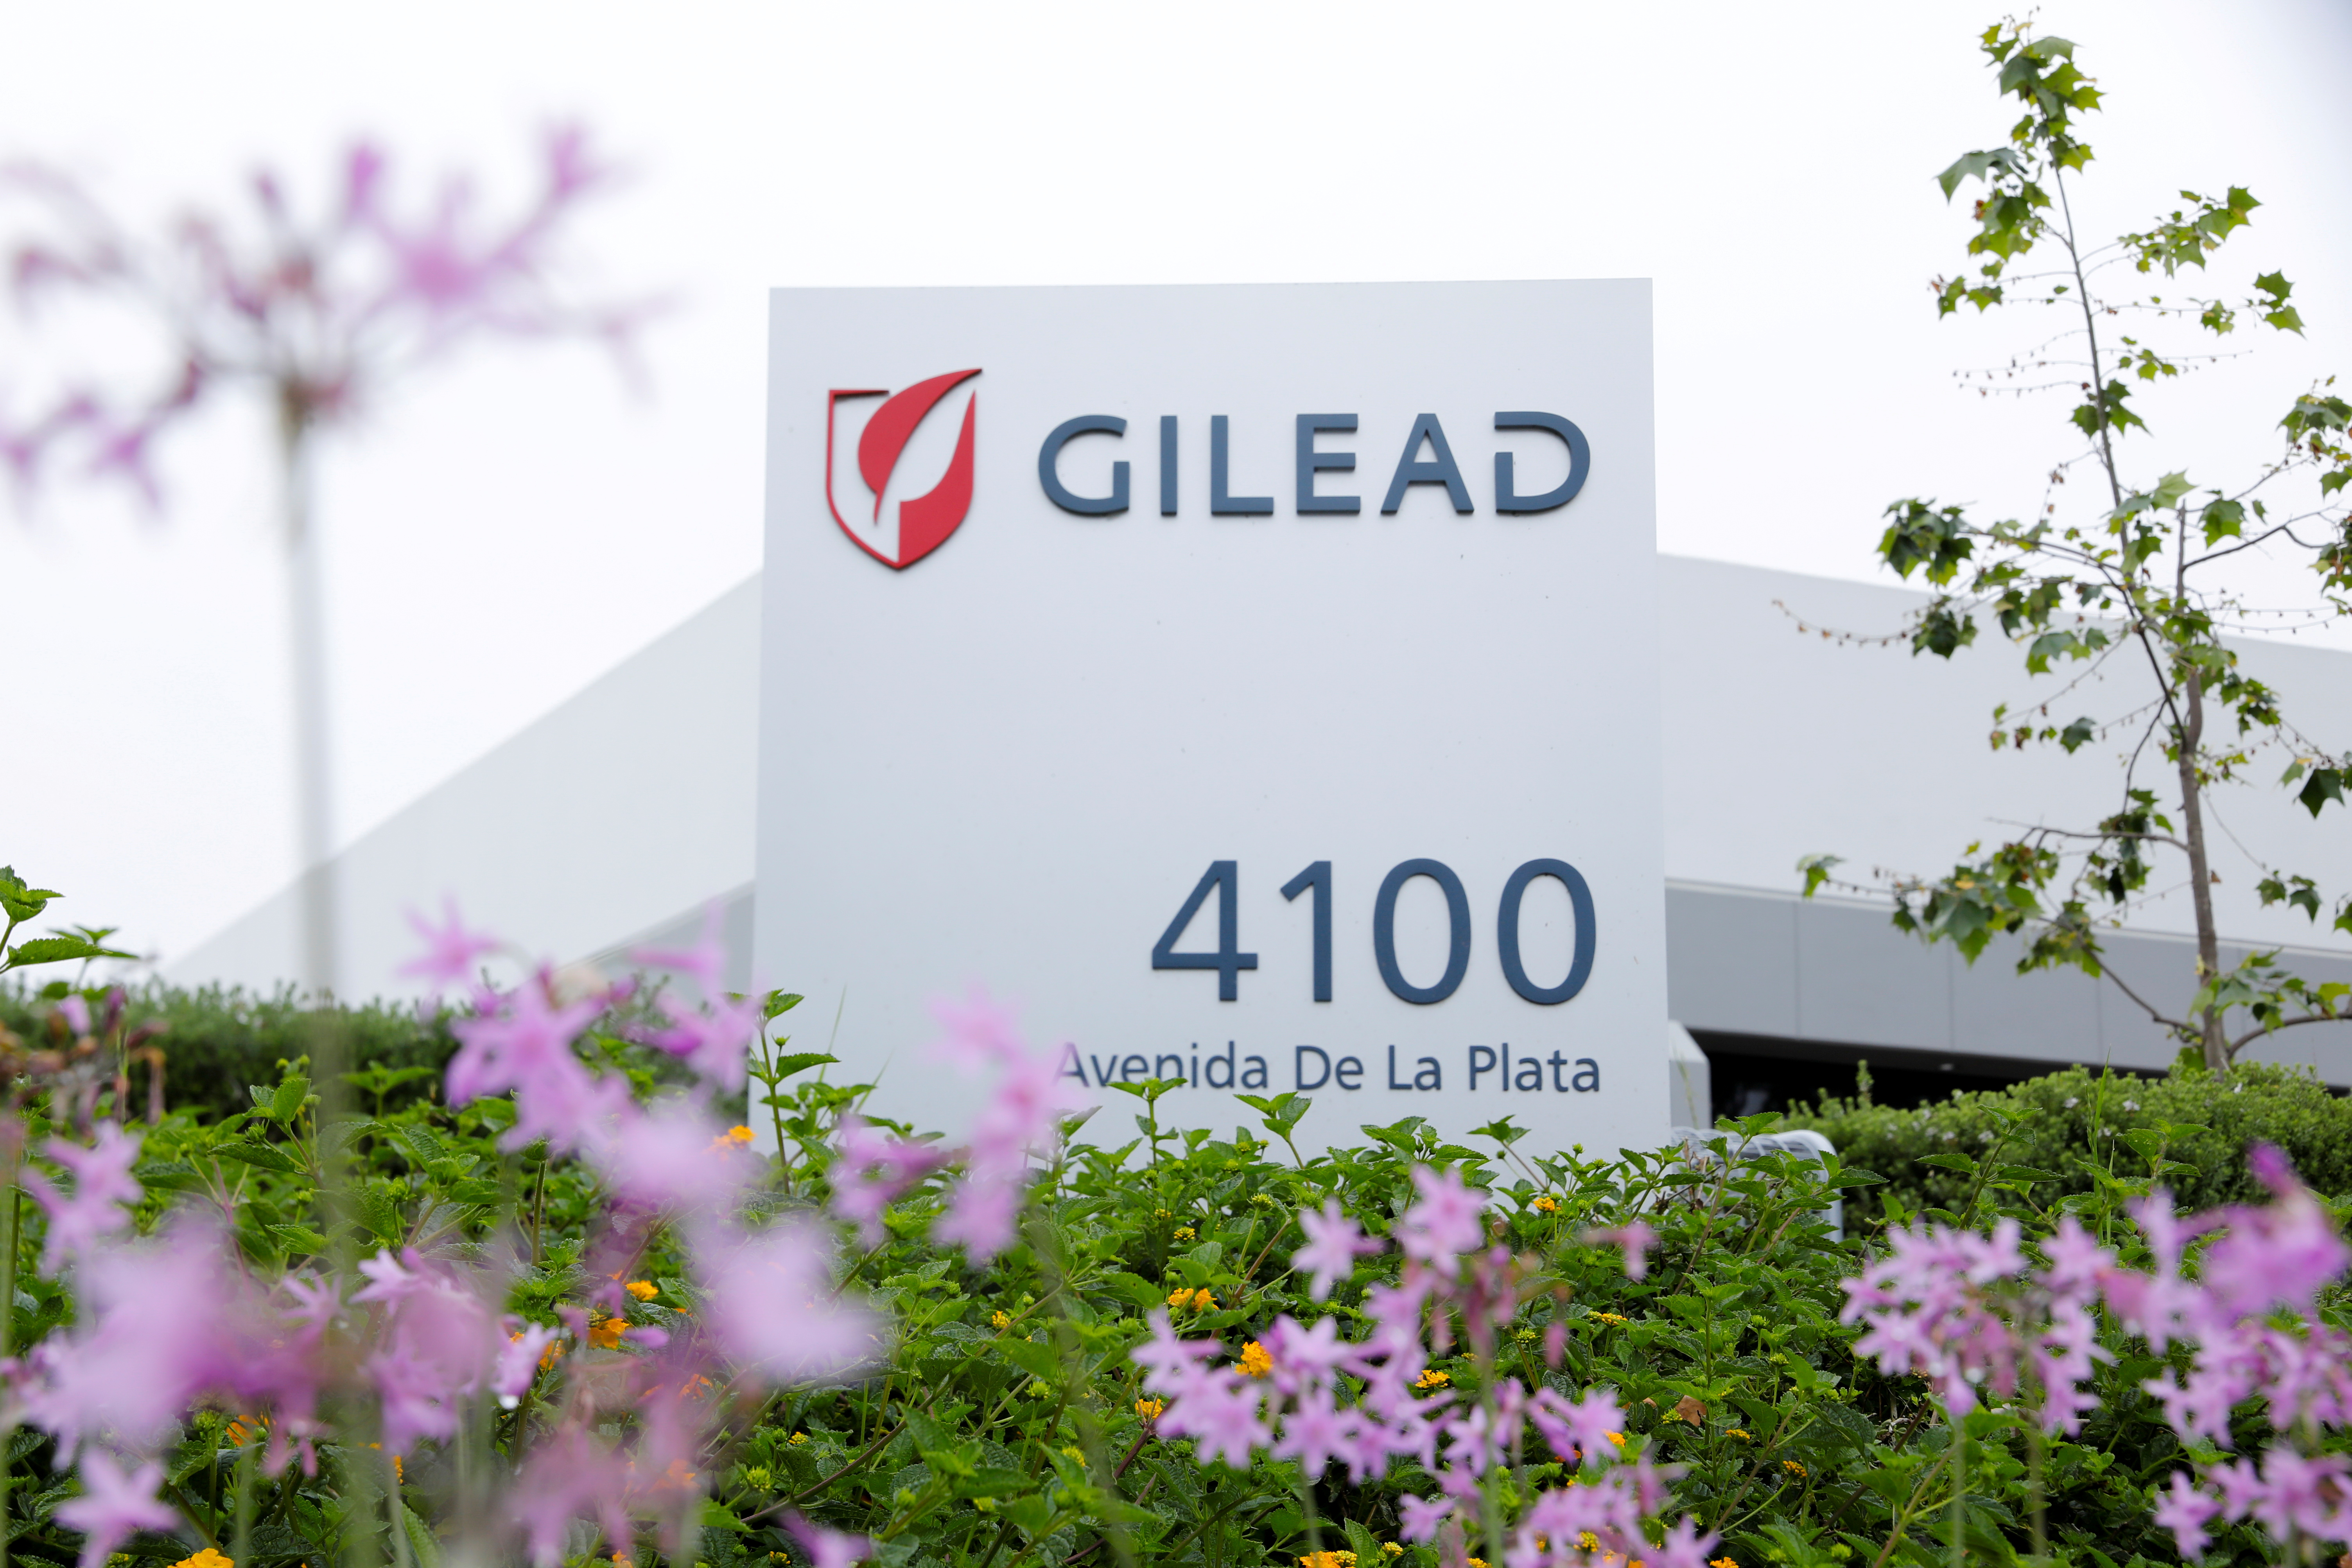 Gilead Sciences biotech company is seen after they announced a Phase 3 Trial of the investigational antiviral drug remdesivir in patients with severe coronavirus disease (COVID-19), during the outbreak of the coronavirus disease (COVID-19), in Oceanside, California, U.S., April 29, 2020. REUTERS/Mike Blake/File Photo